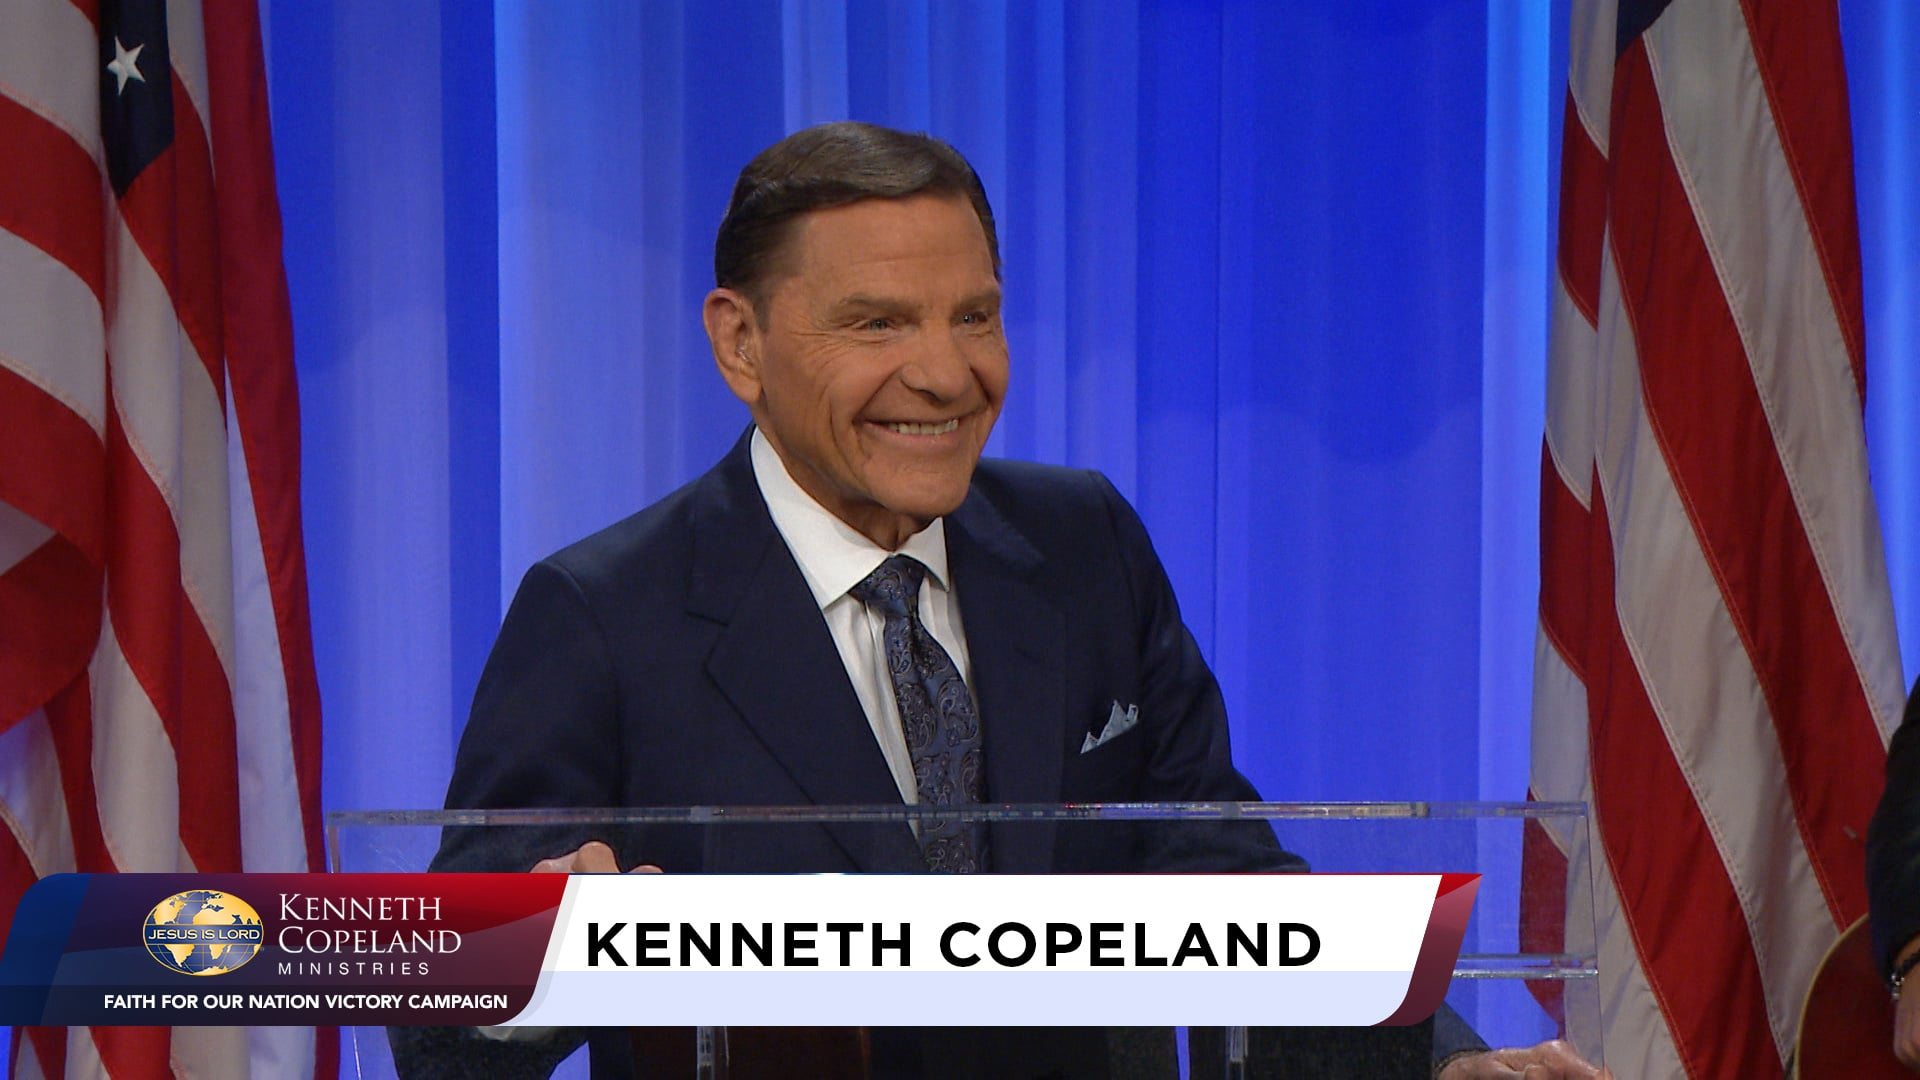 Why is Jesus so interested in teaching about faith? At the 2020 Faith for Our Nation VICTORY Campaign, Kenneth Copeland shares biblical examples of how people used the fundamentals of faith to get supernatural results. Hear the four things the woman did to get her healing miracle in Mark 5:25-34!